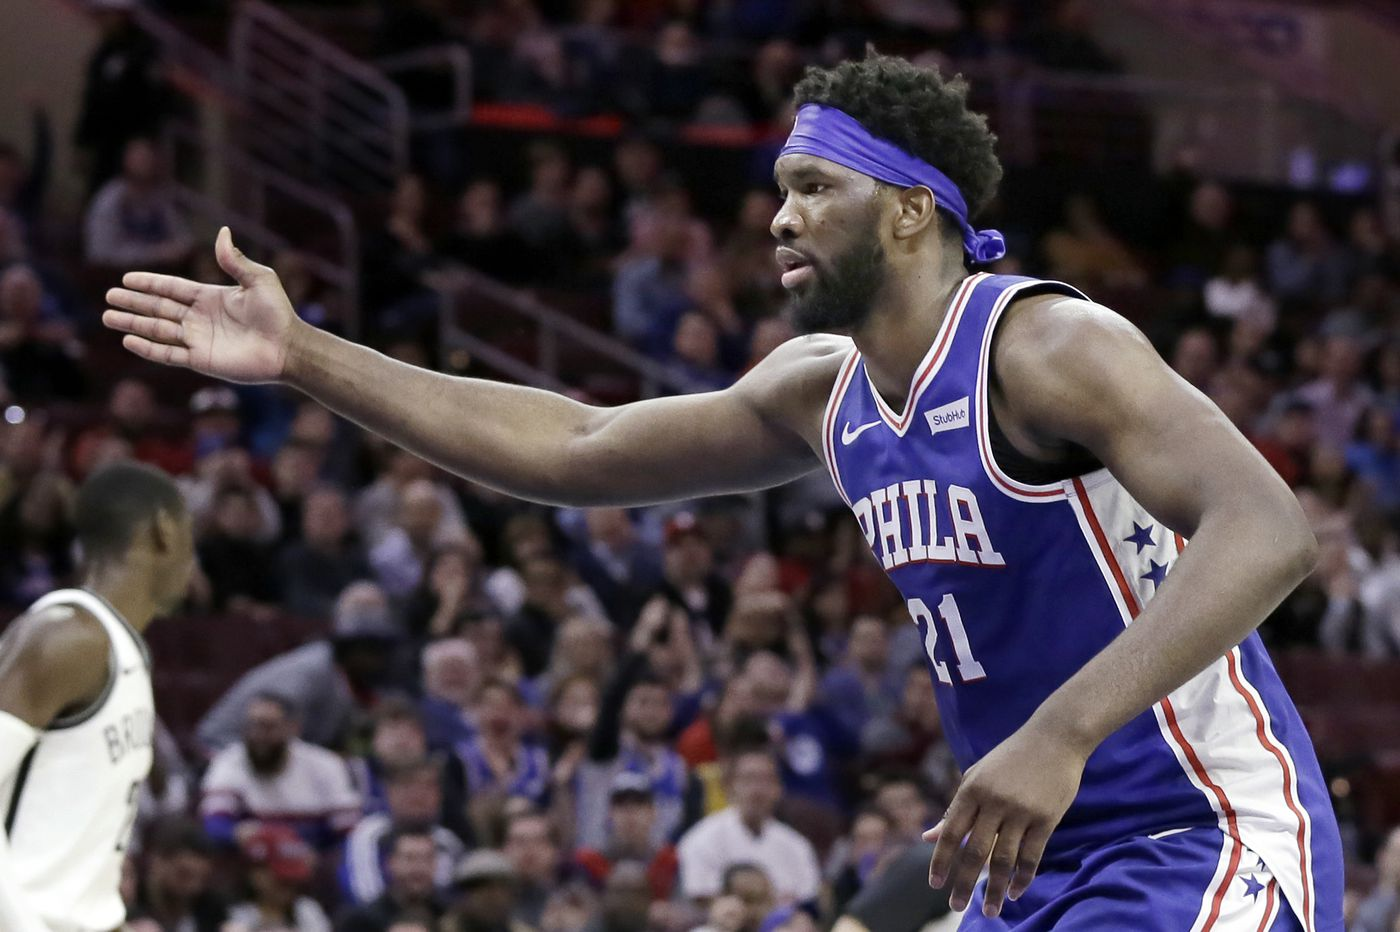 Brett Brown knows the Sixers' starters haven't played together much, but 'the good news is we have talent'